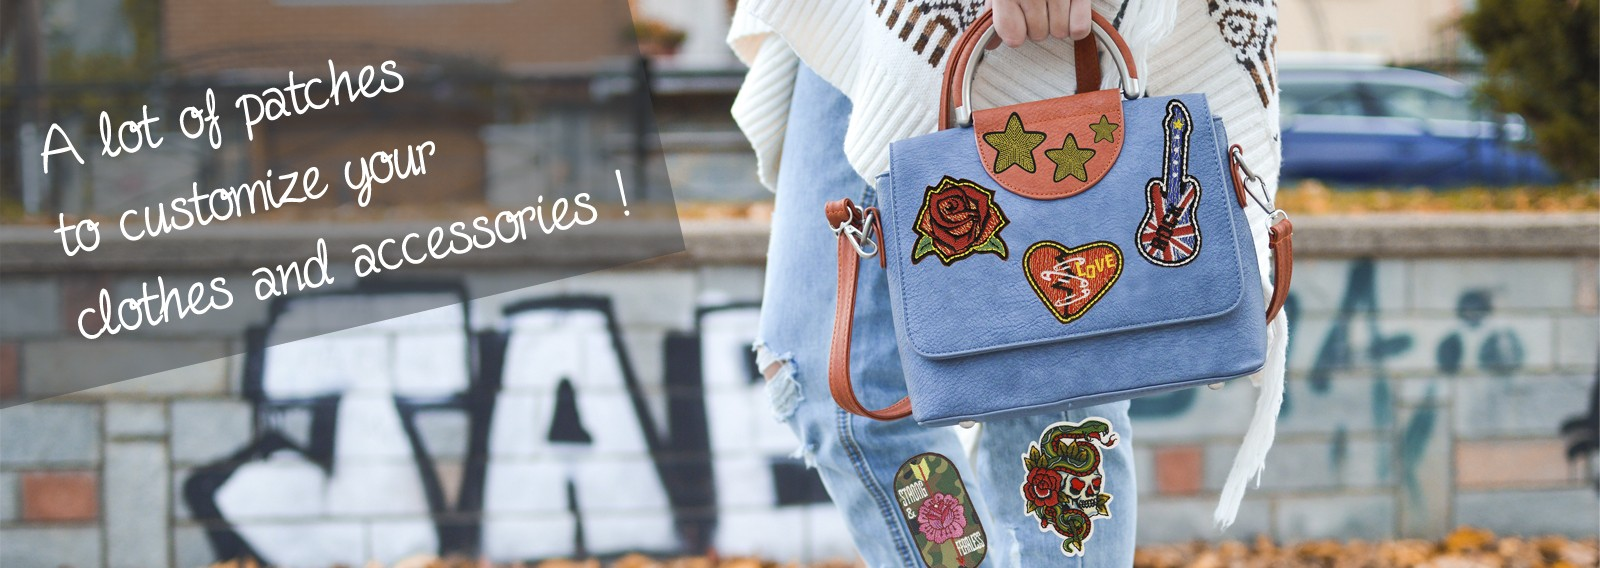 A lot of patches to customize your clothes and accessories !